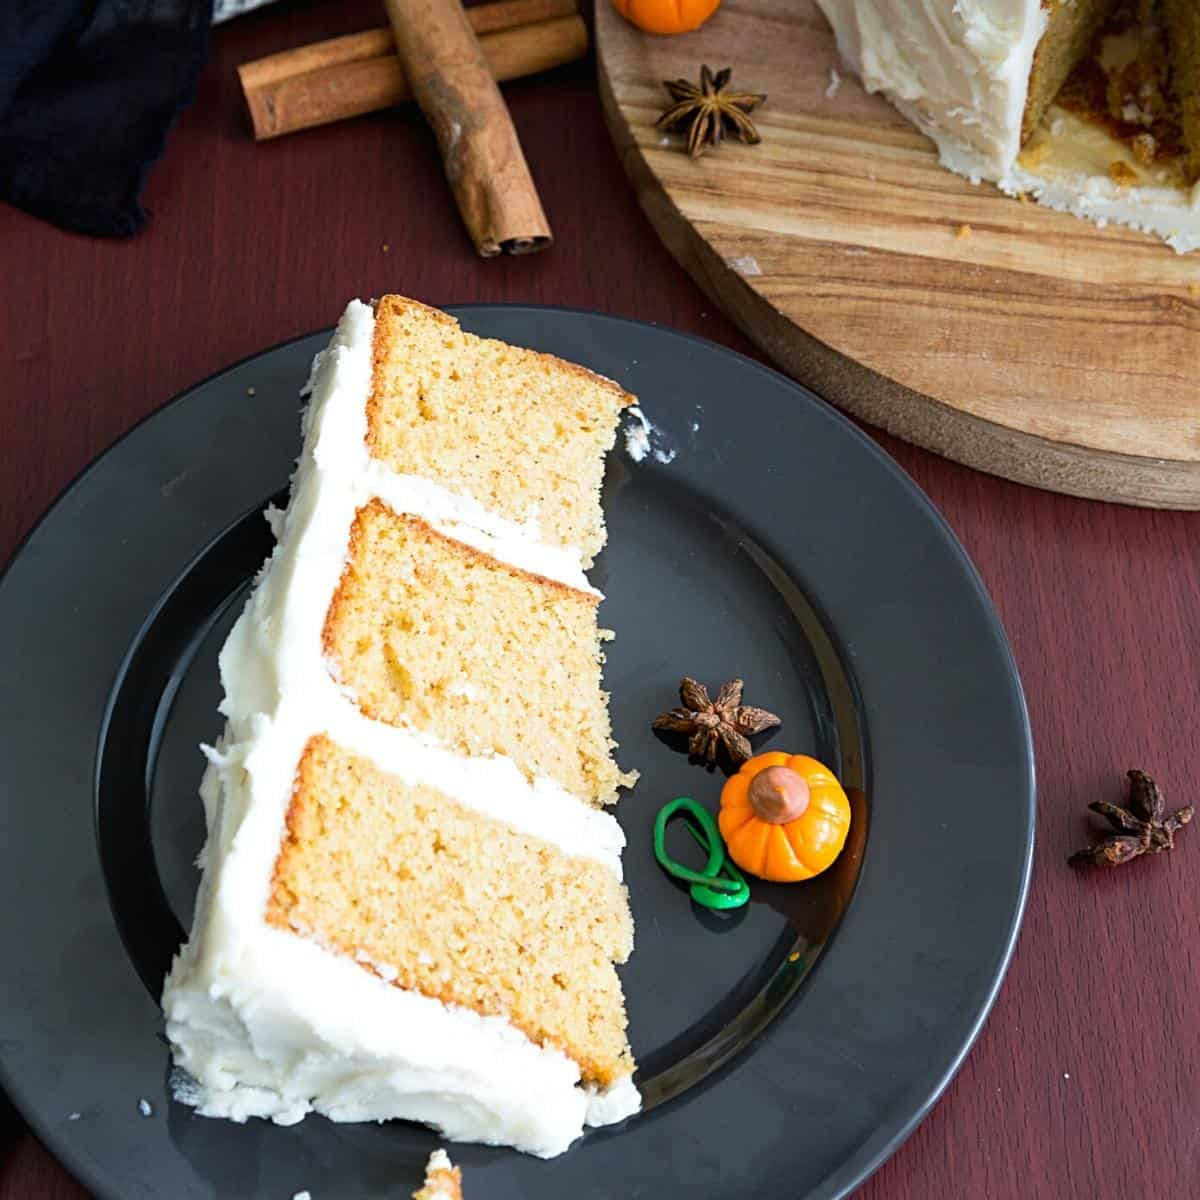 A slice of latte cake on a plate.